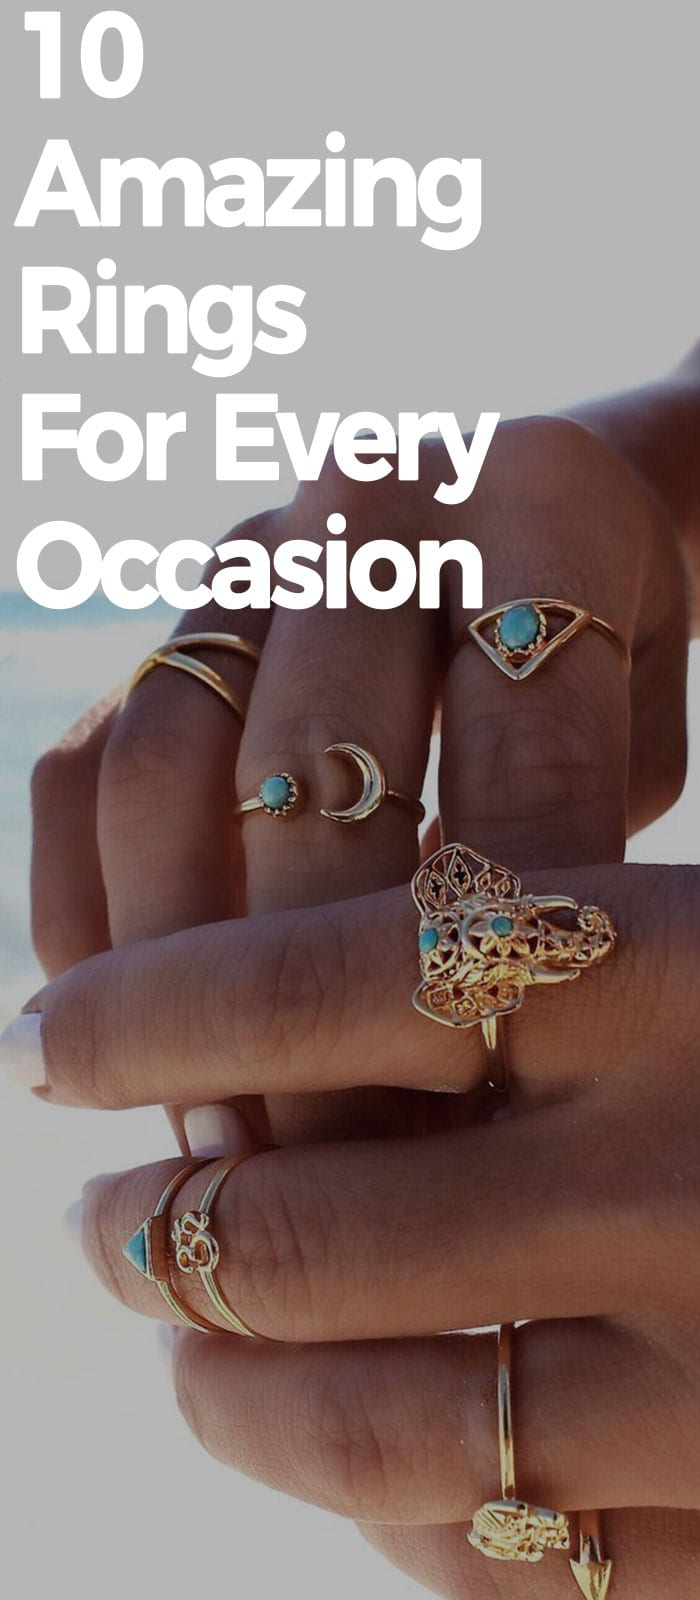 10 Amazing Rings For Every Occasion!